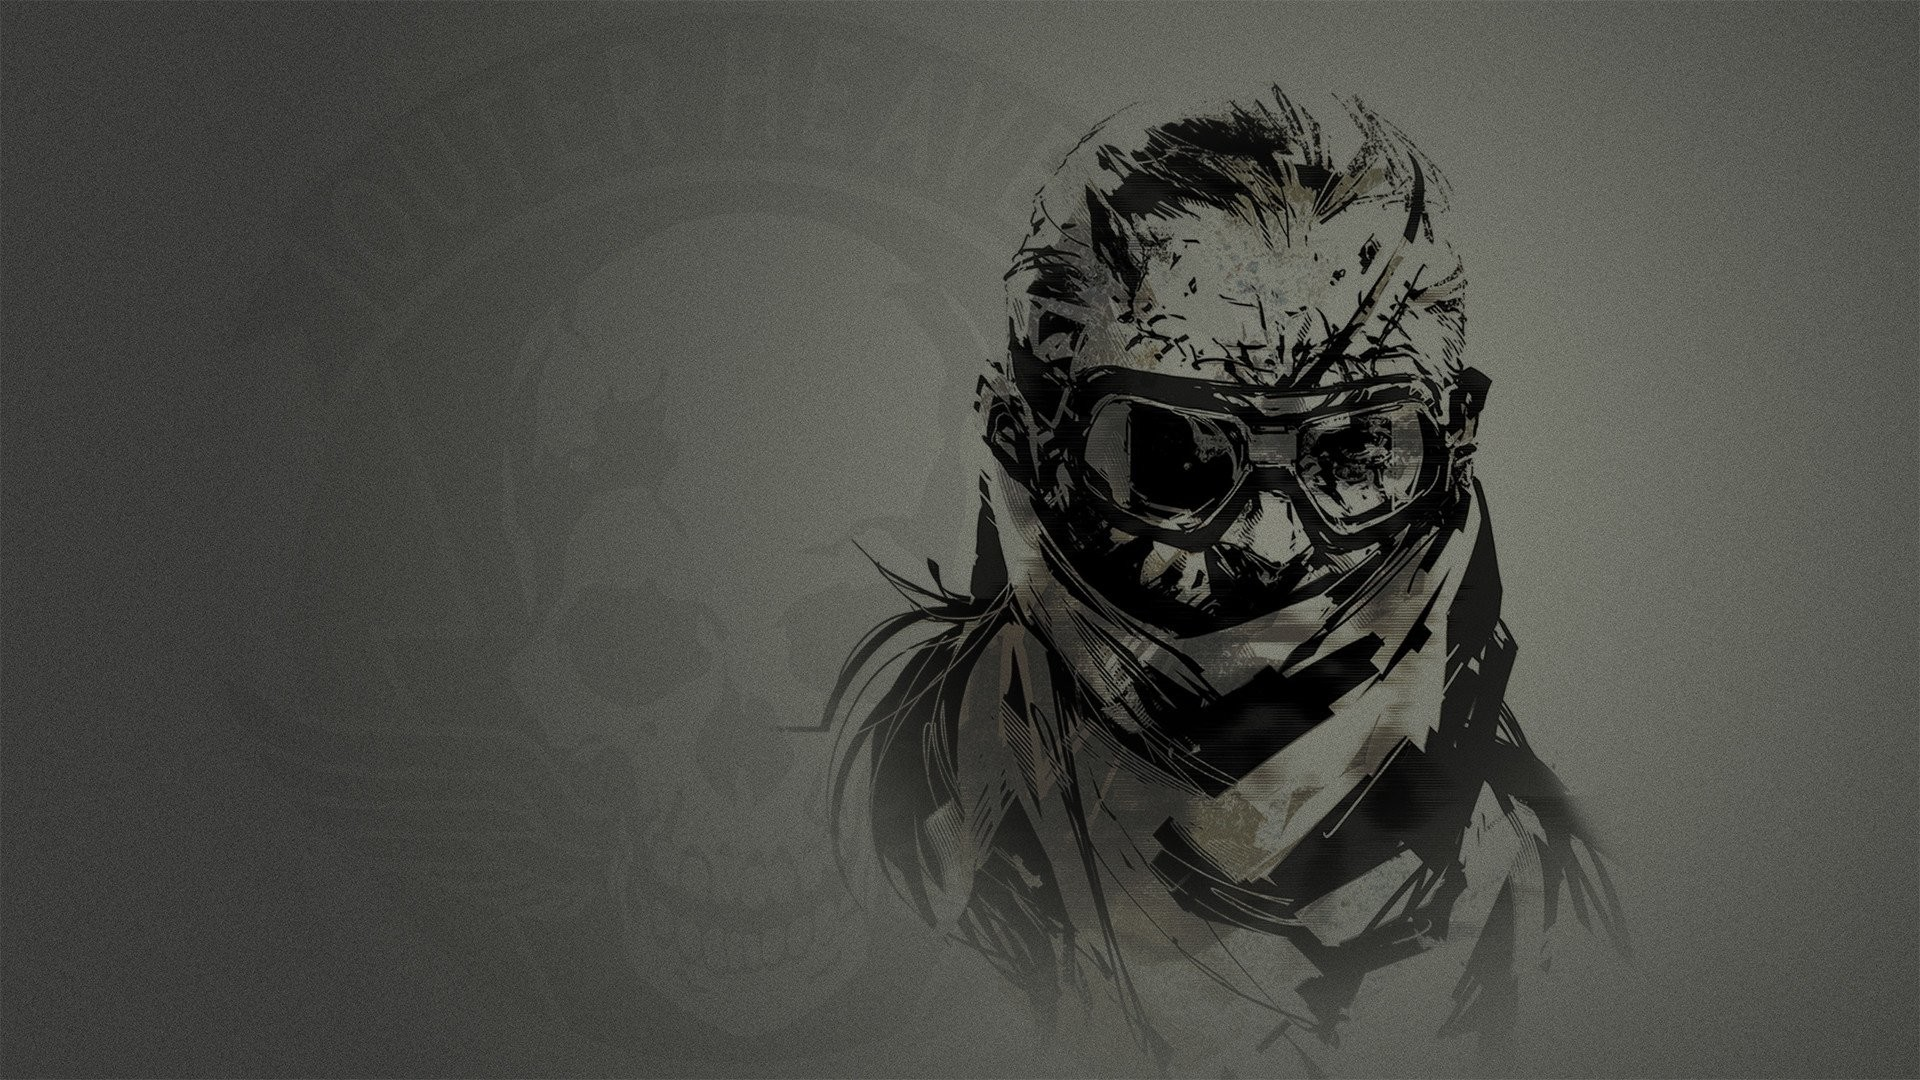 1920x1080 METAL GEAR SOLID tactical shooter action fighting warrior military wallpaper  |  | 867218 | WallpaperUP